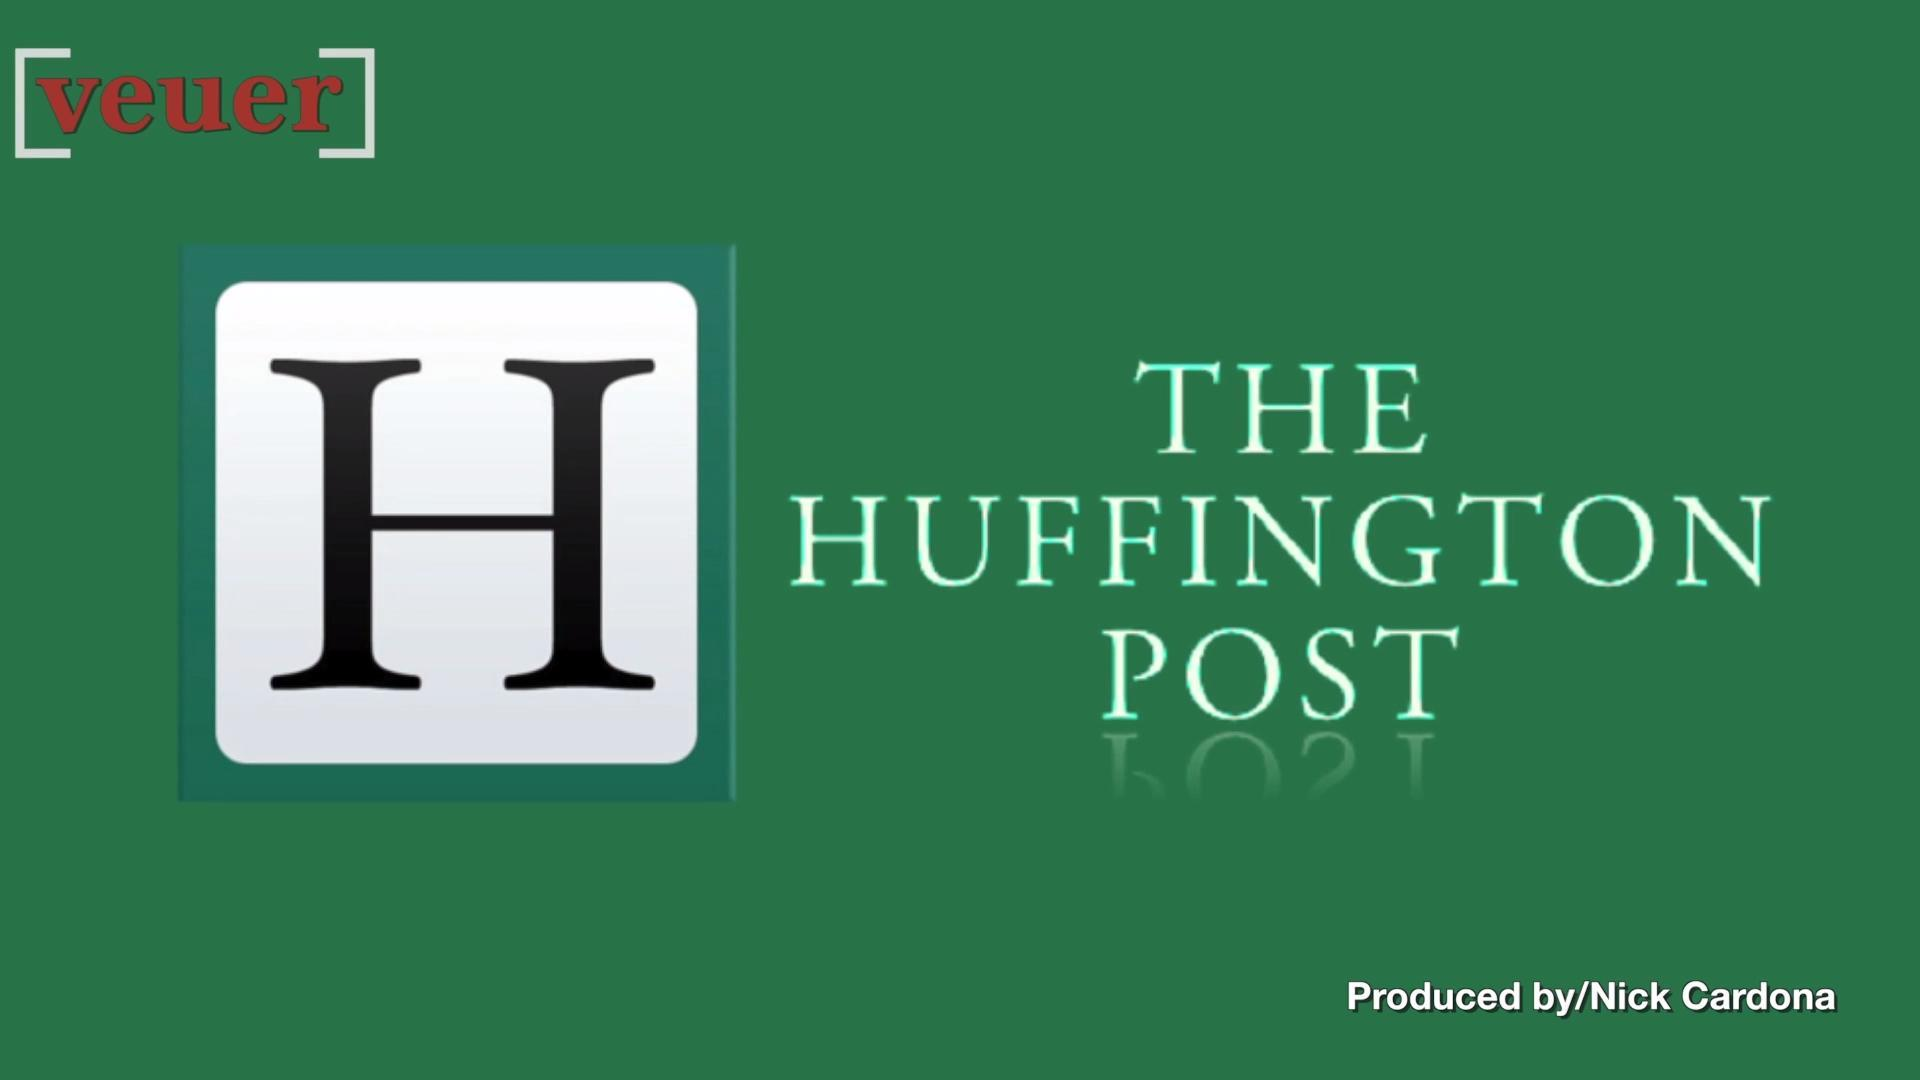 The Huffington Post Is Getting A New Name and New Look